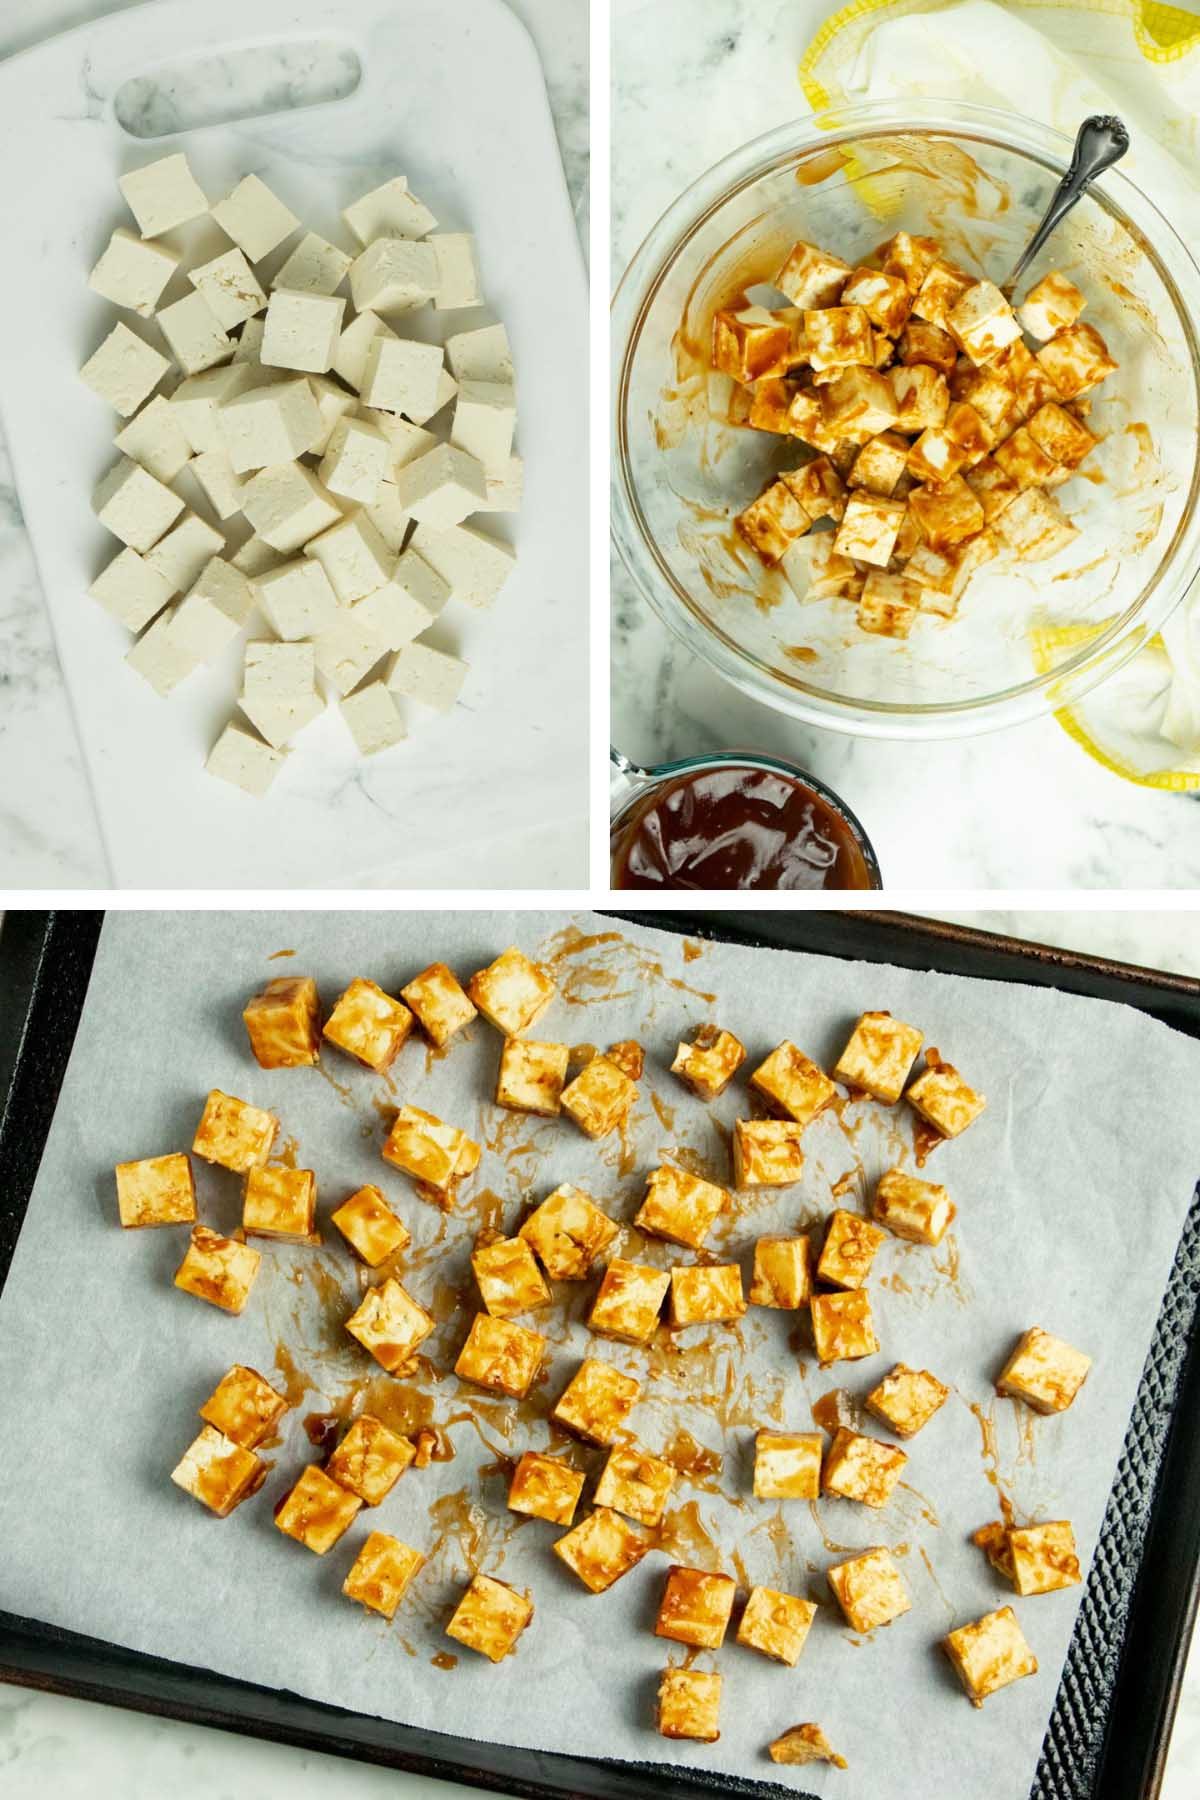 image collage showing cubed tofu tossed with BBQ sauce arranged on a baking sheet